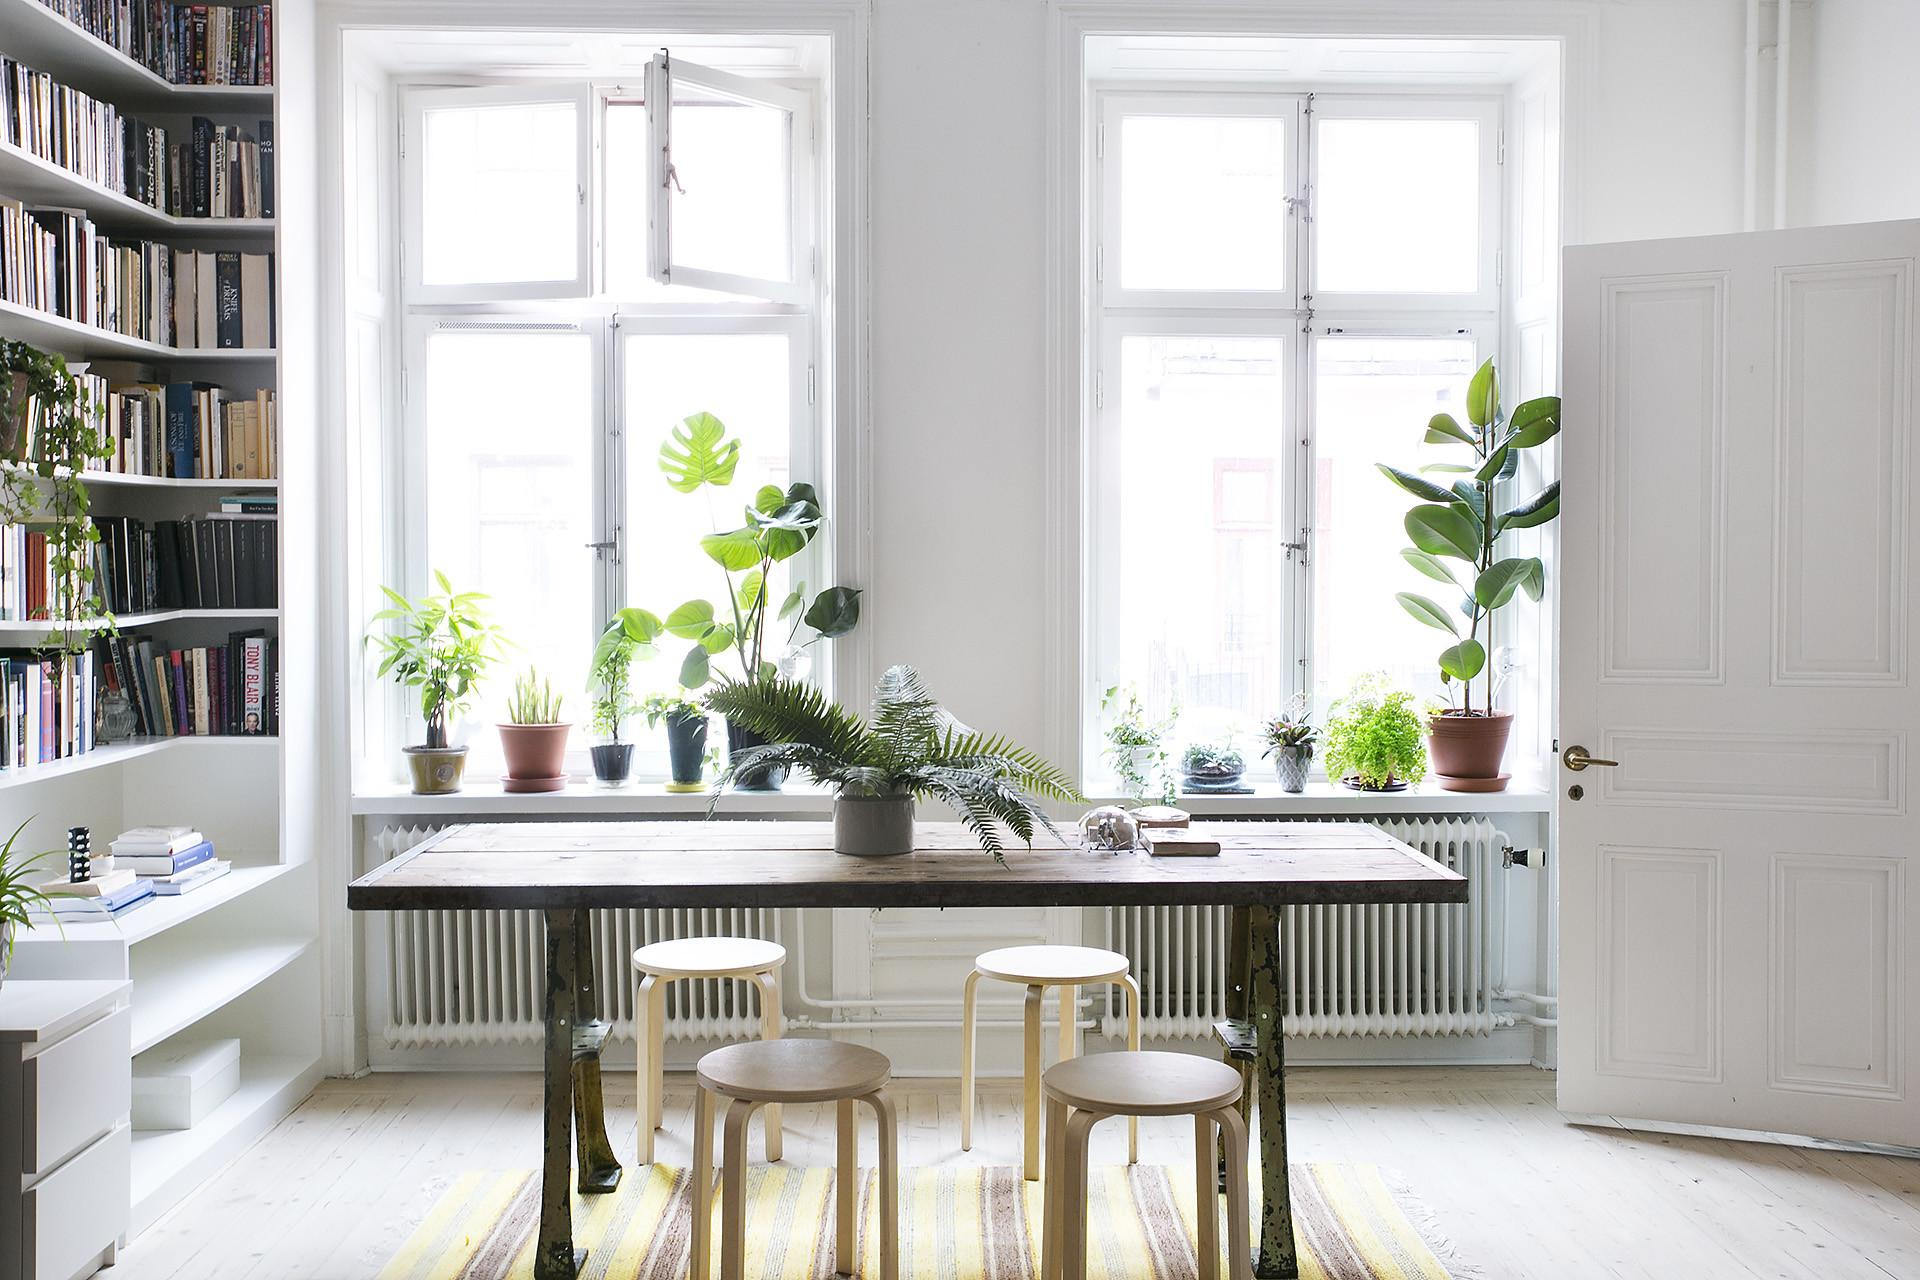 Fredagsmys Swedish Apartment Filled Green Plants